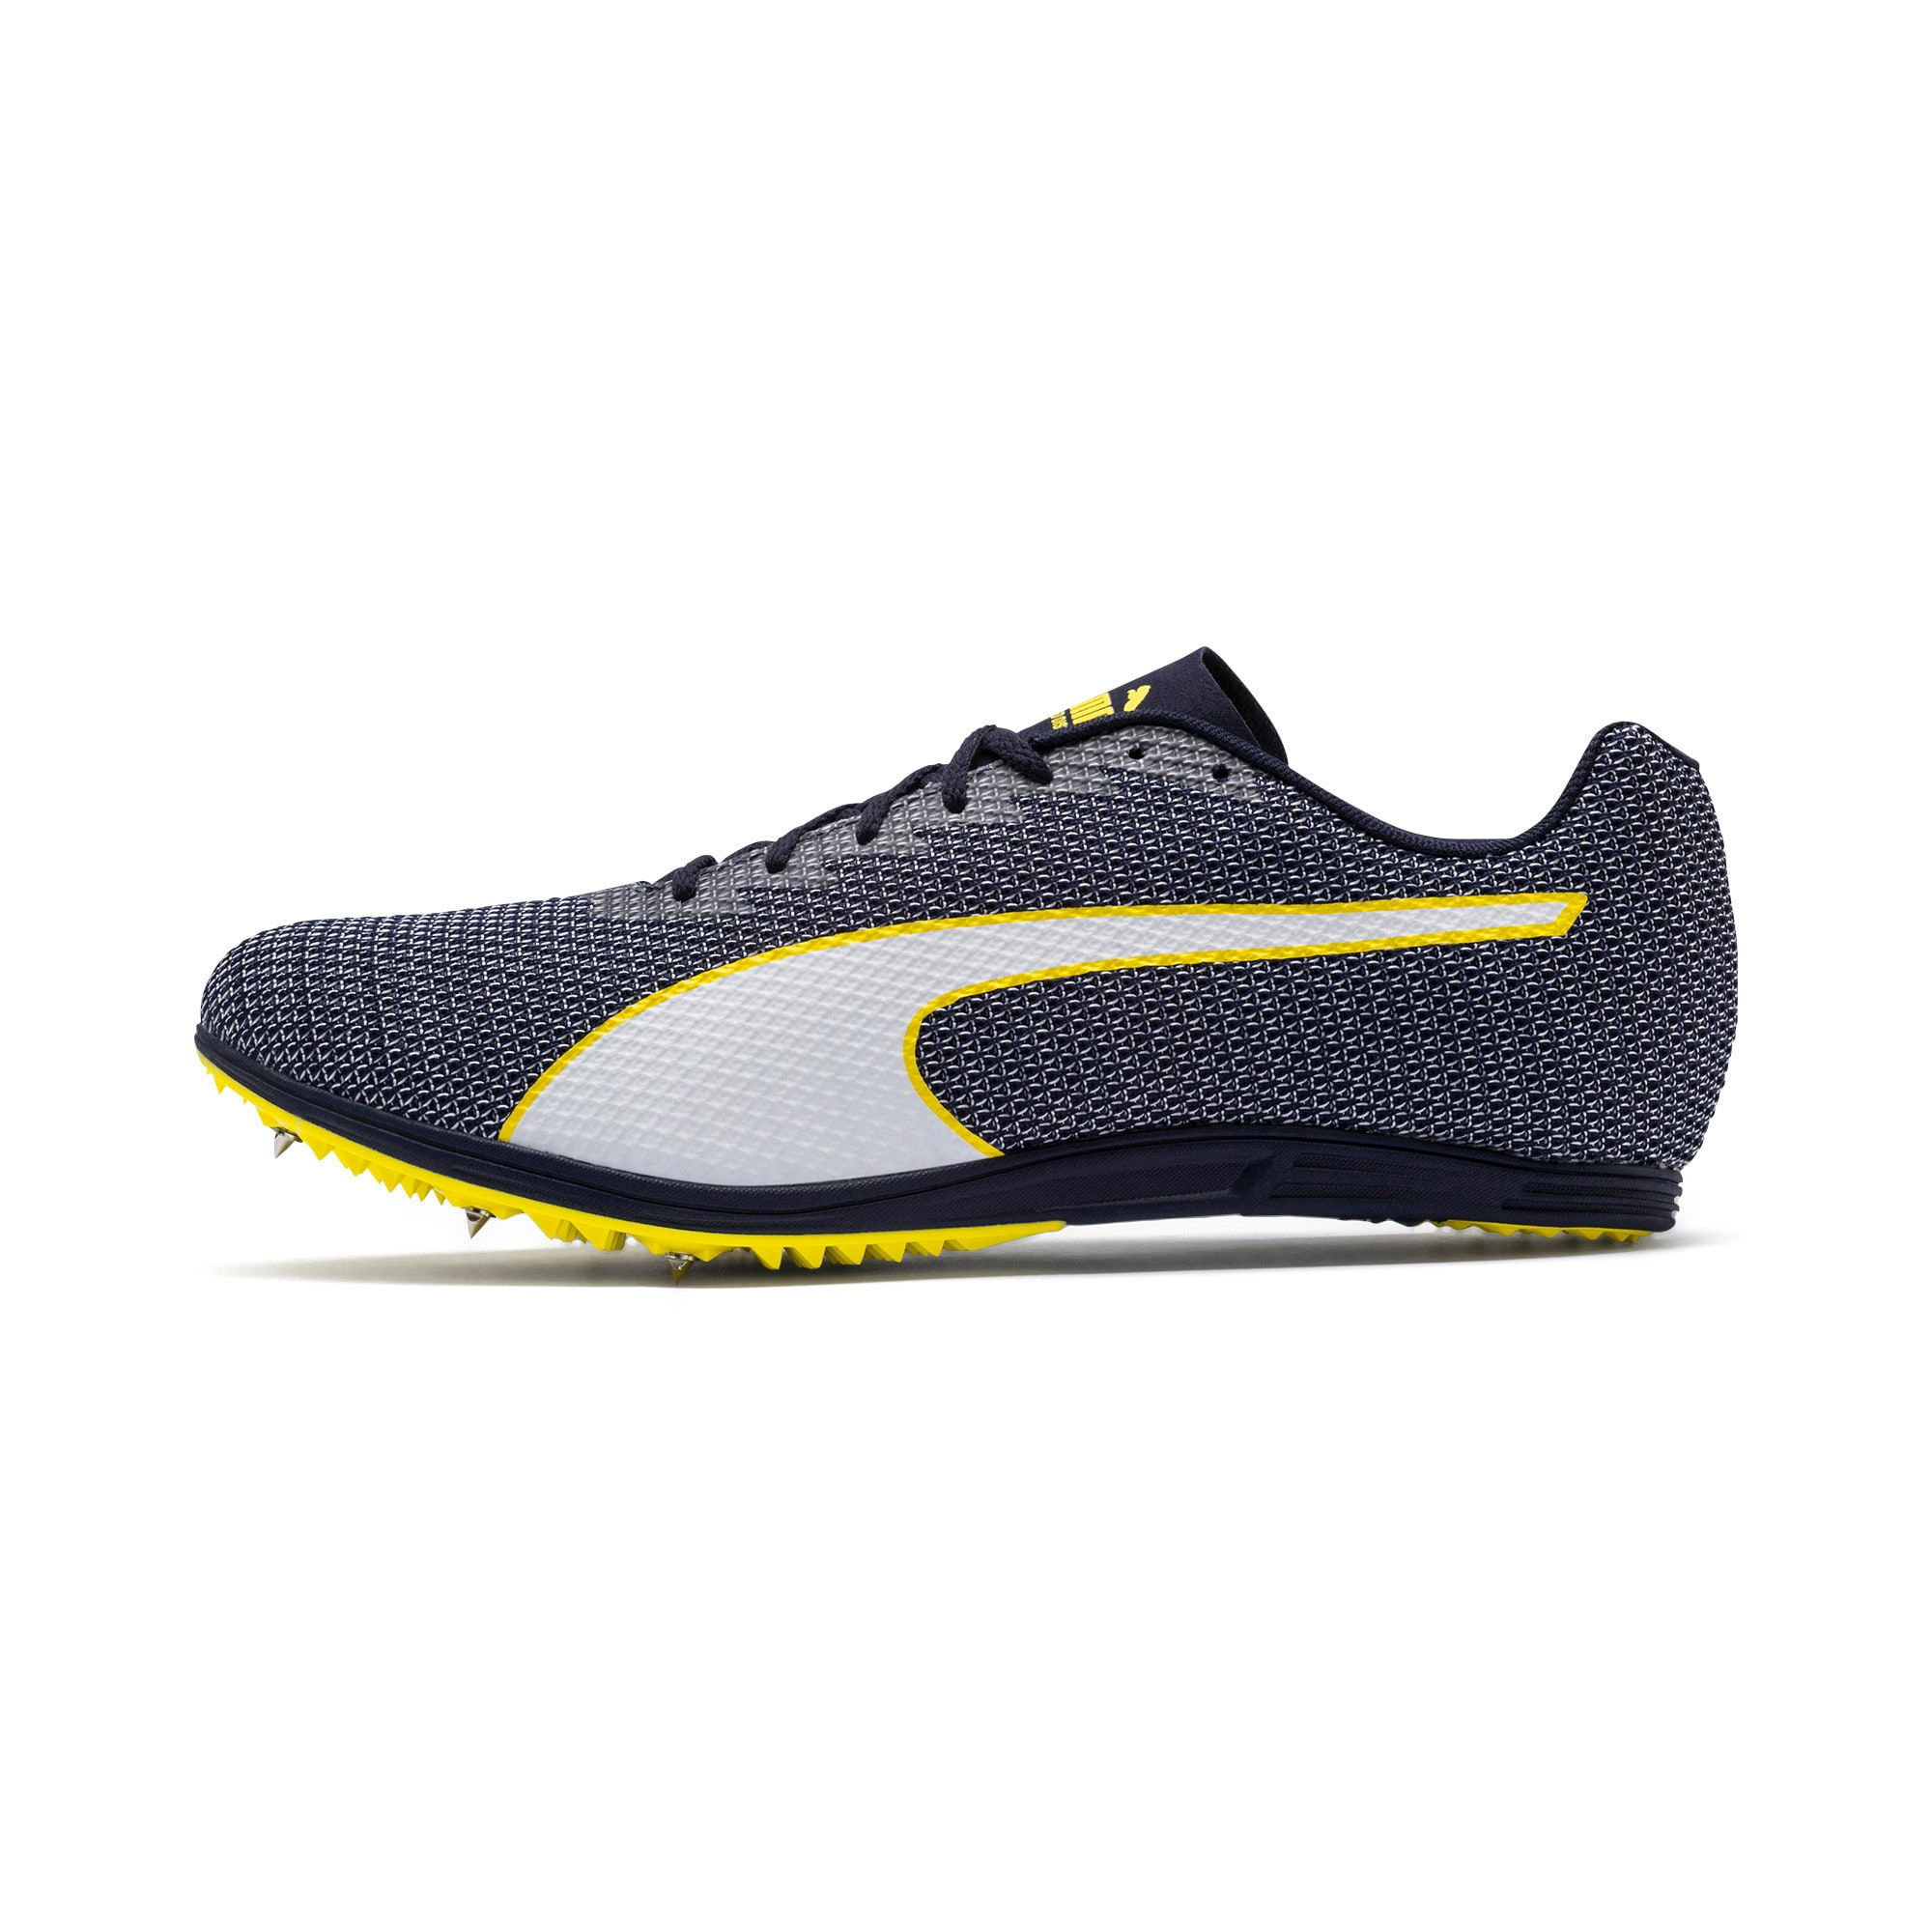 hot-selling latest new release new varieties evoSPEED Distance 8 Men's Track Spikes